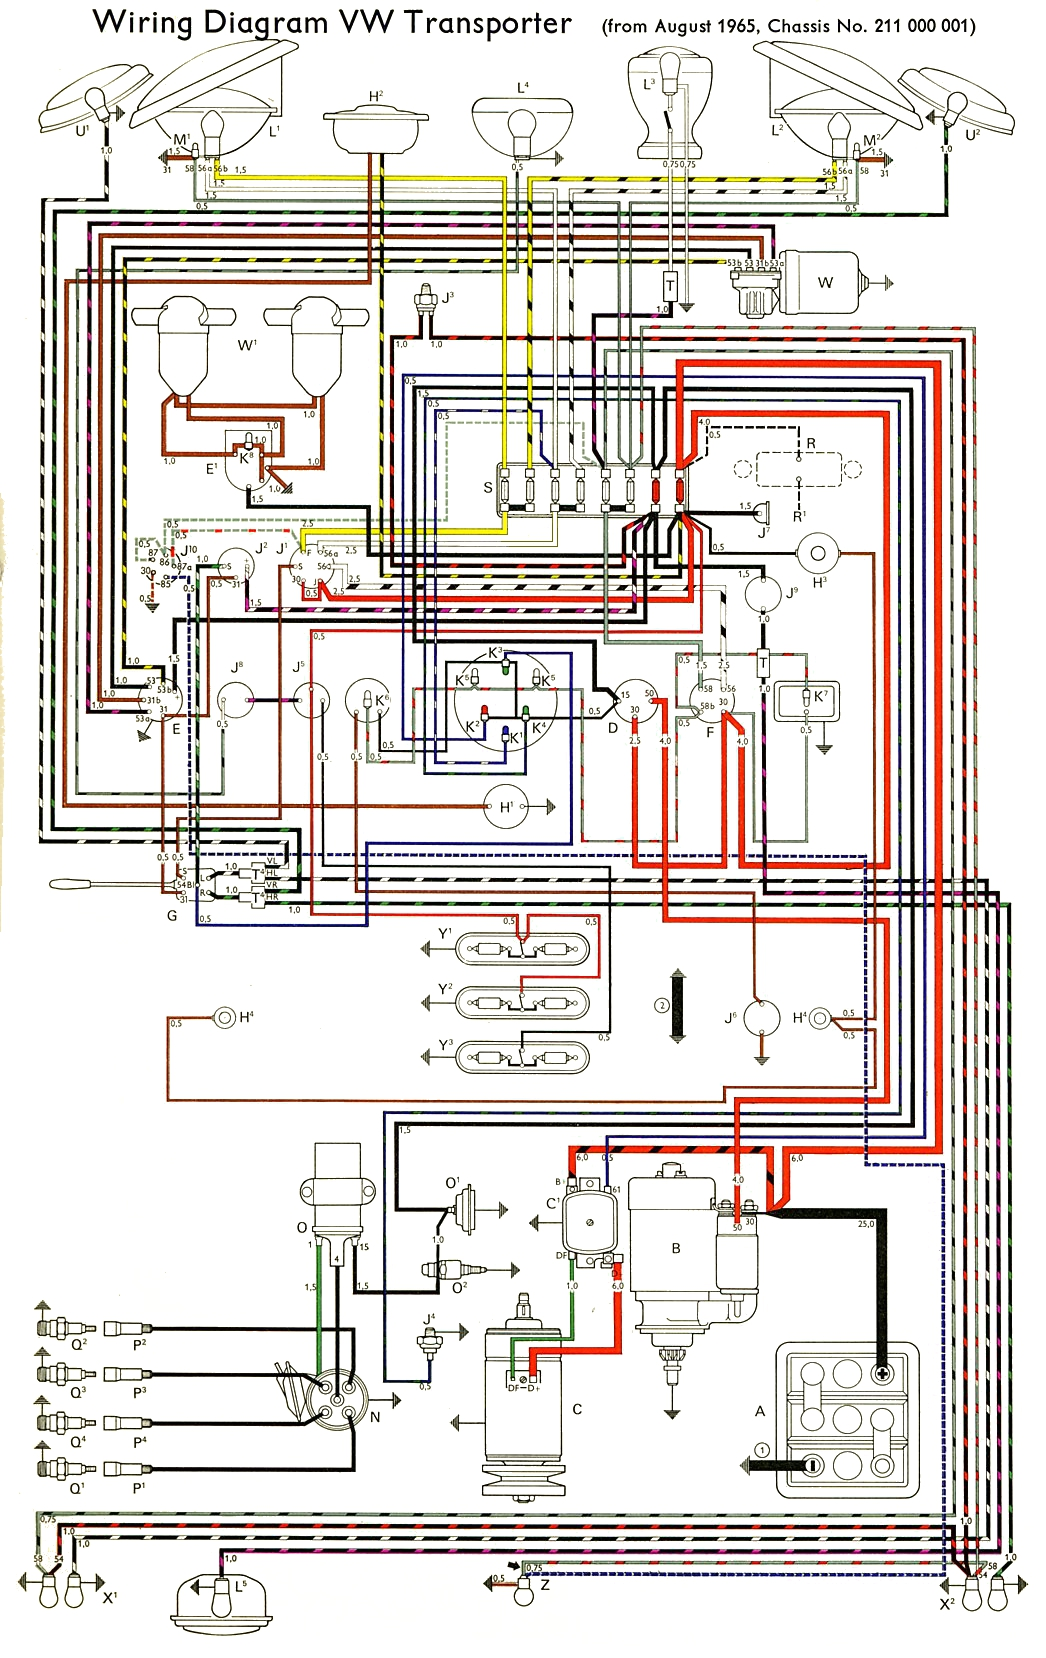 bus_66 vw t5 wiring diagram t8 wiring diagram \u2022 free wiring diagrams t5 transmission wiring diagram at bakdesigns.co